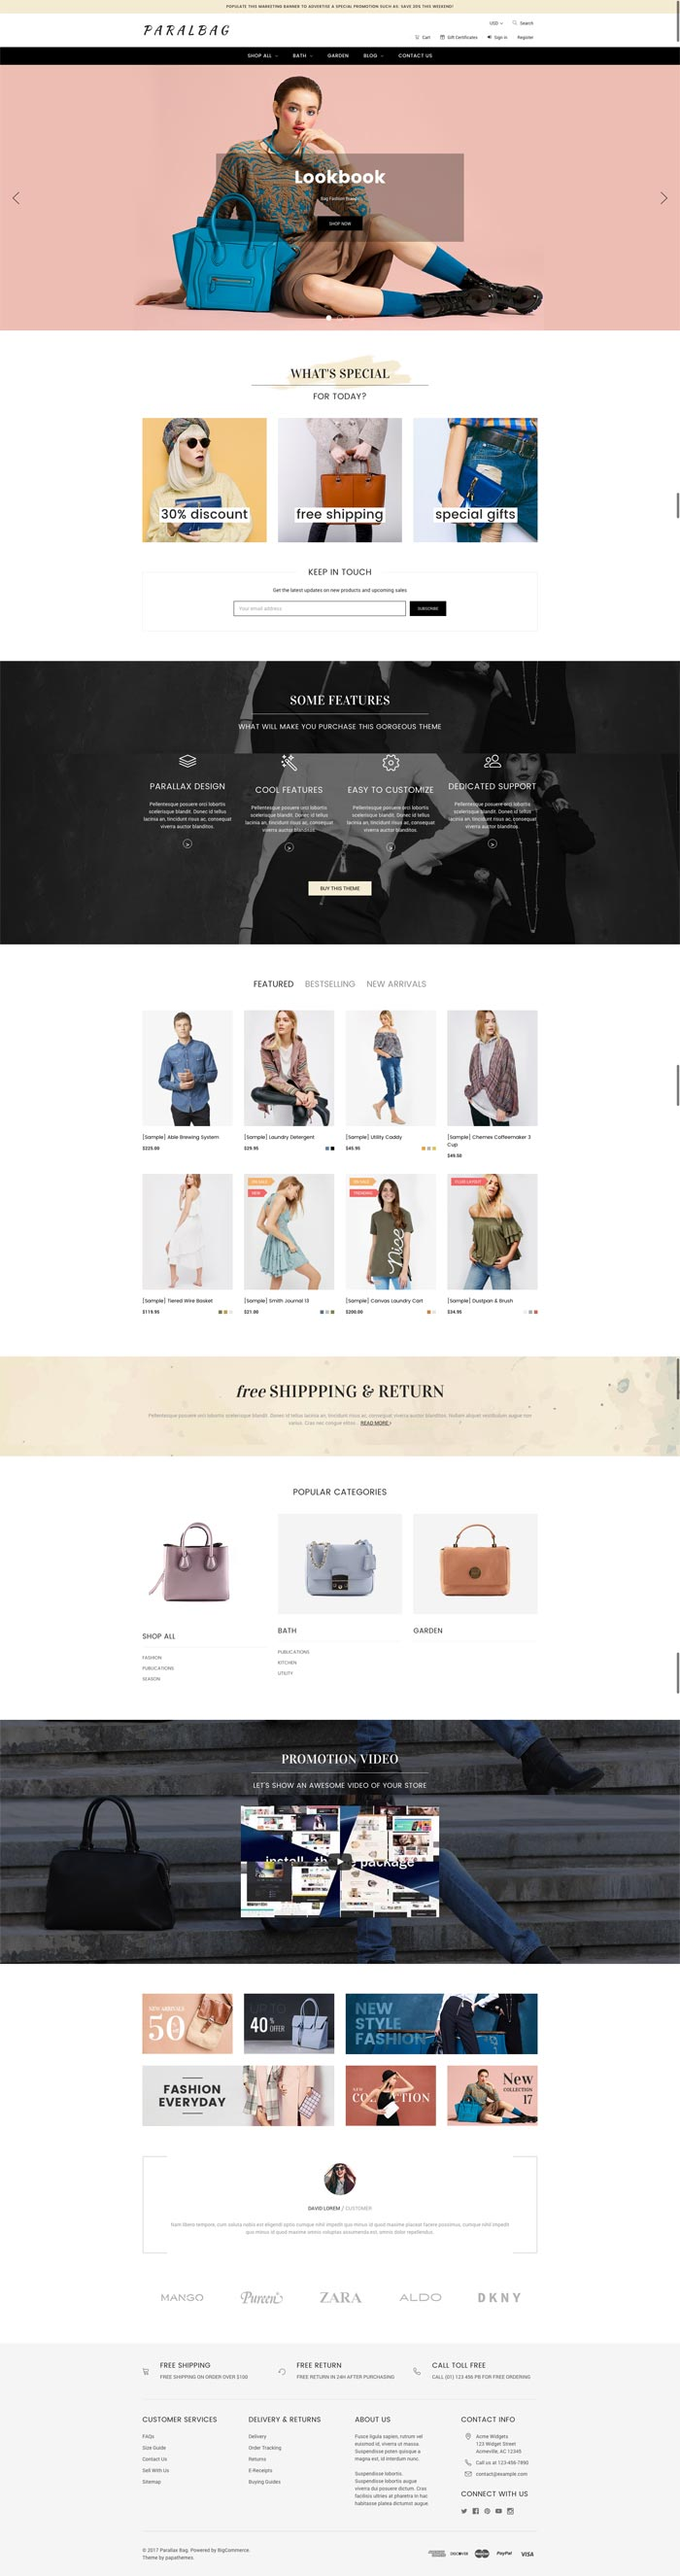 Customization bigcommerce theme sarahmarket user guide.